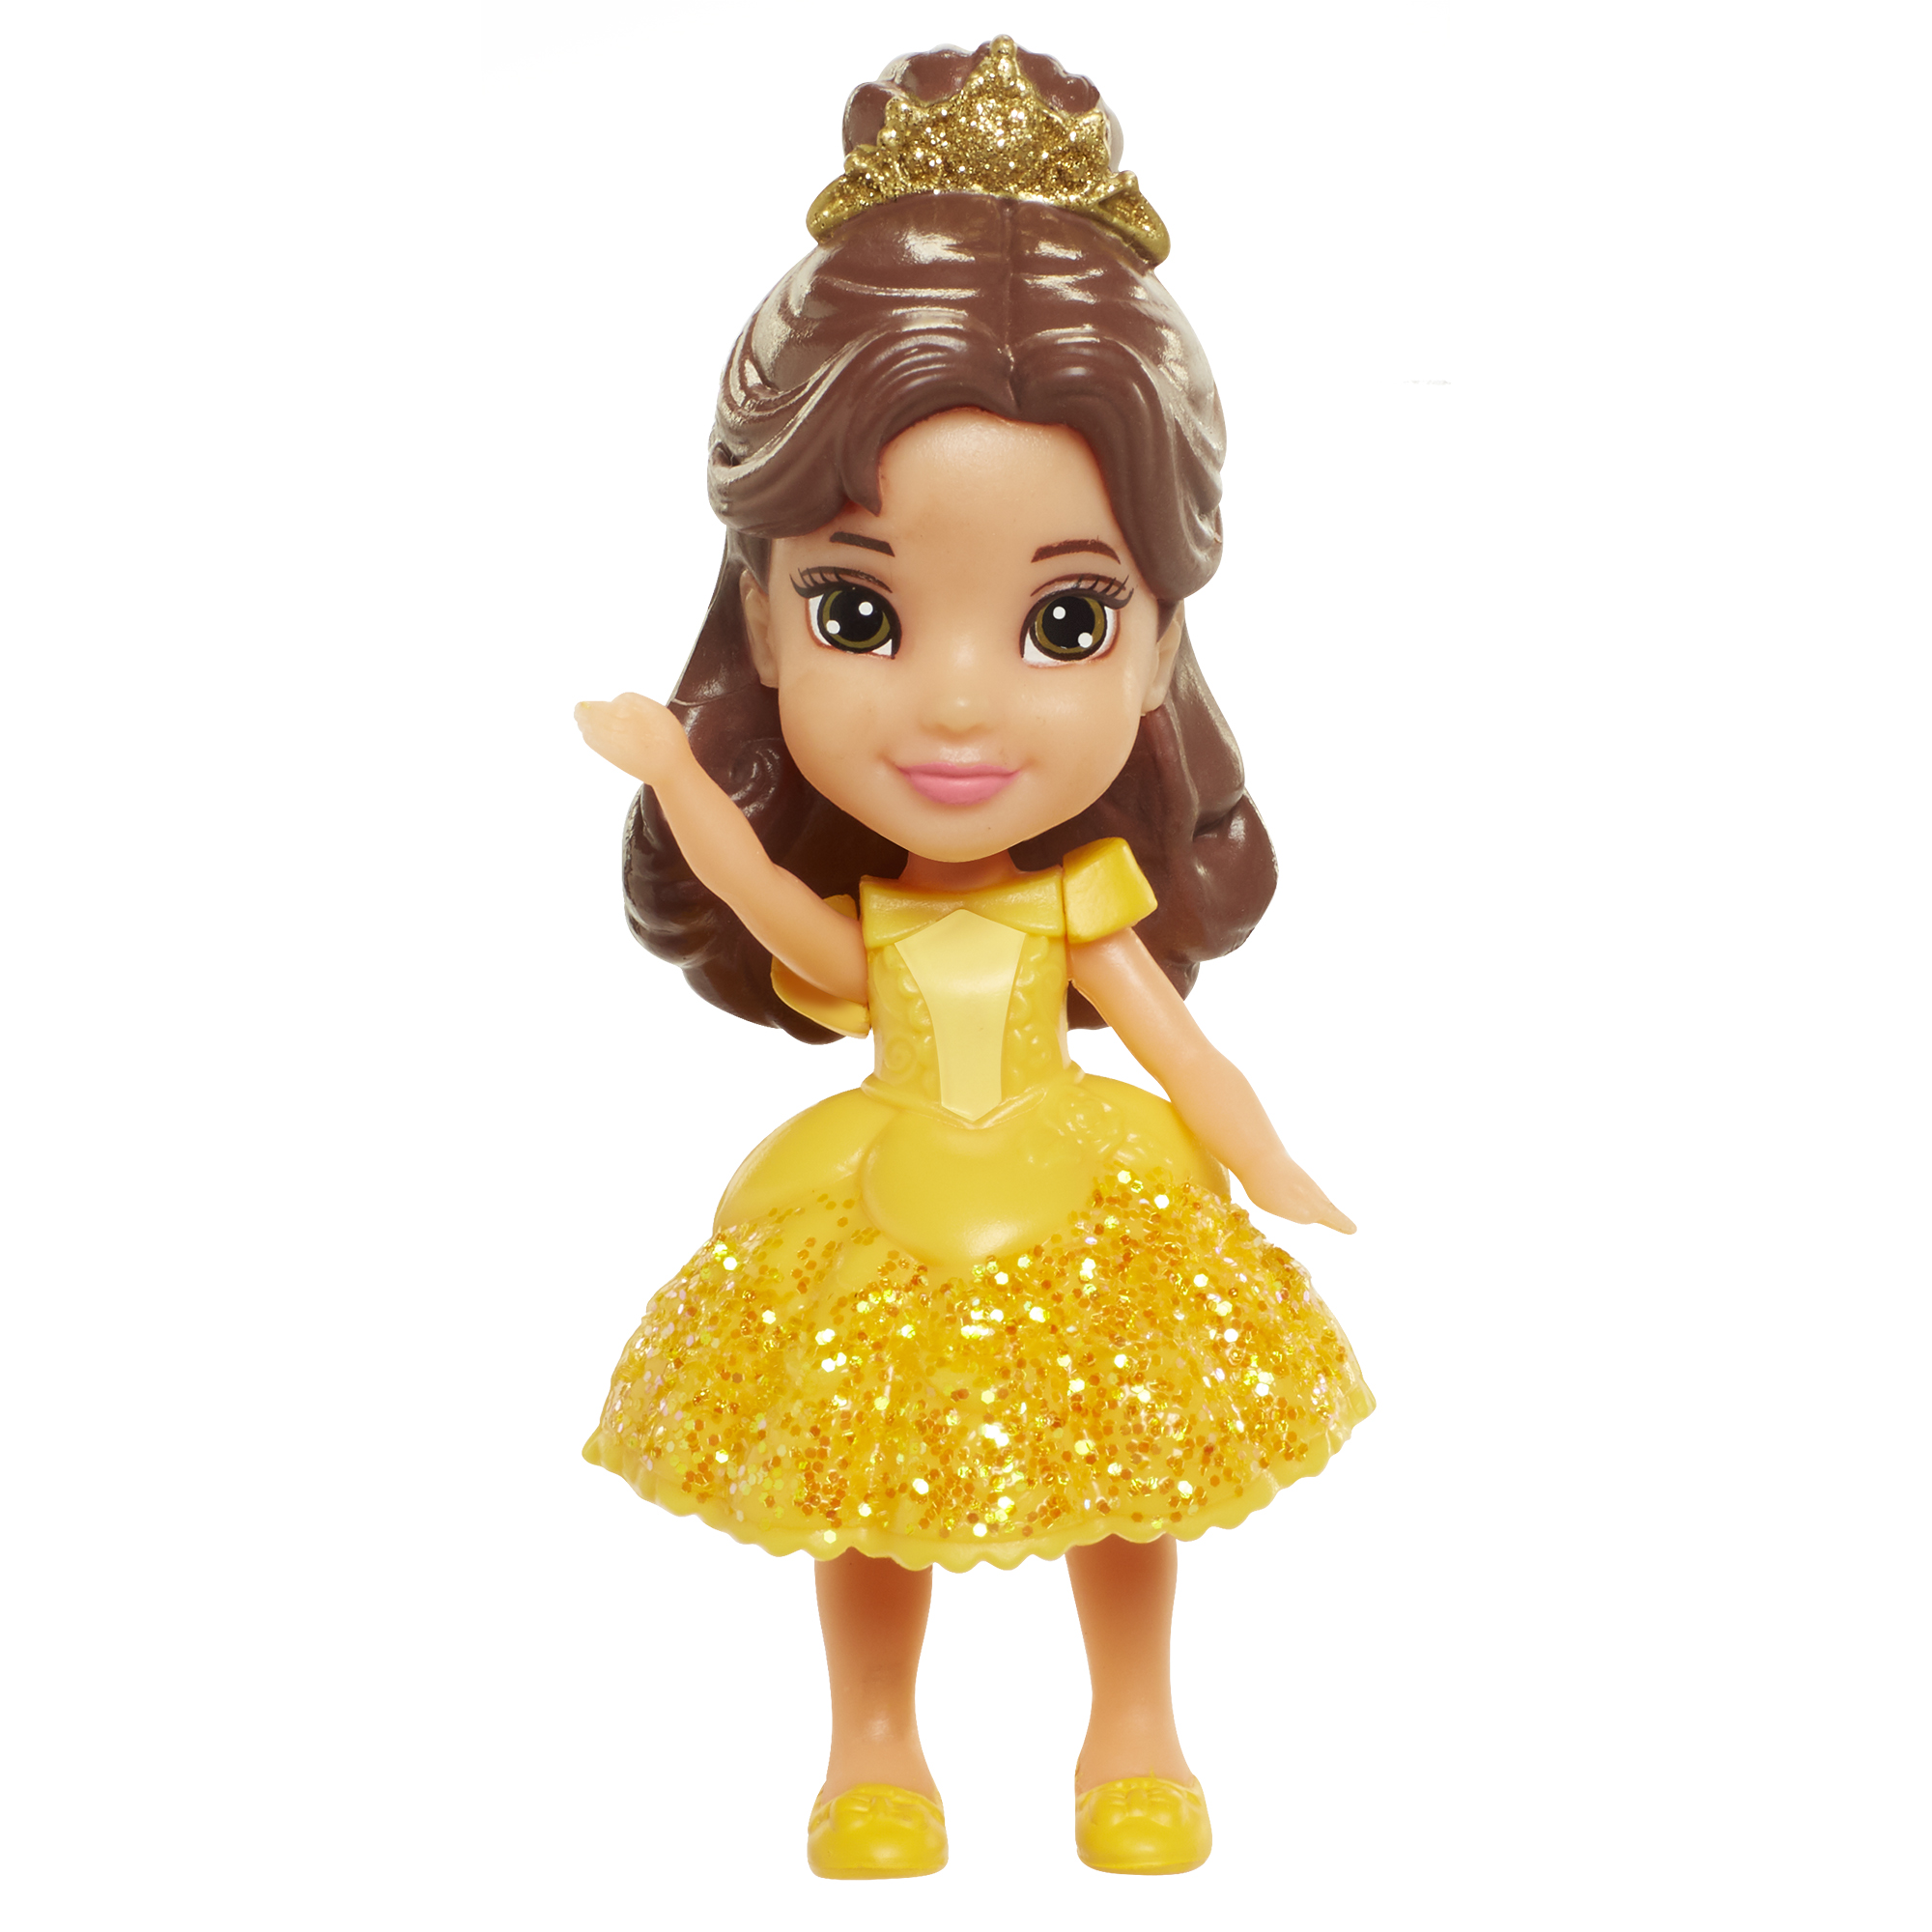 Belle 3 inch Mini Doll (Yellow Dress) Disney Princess